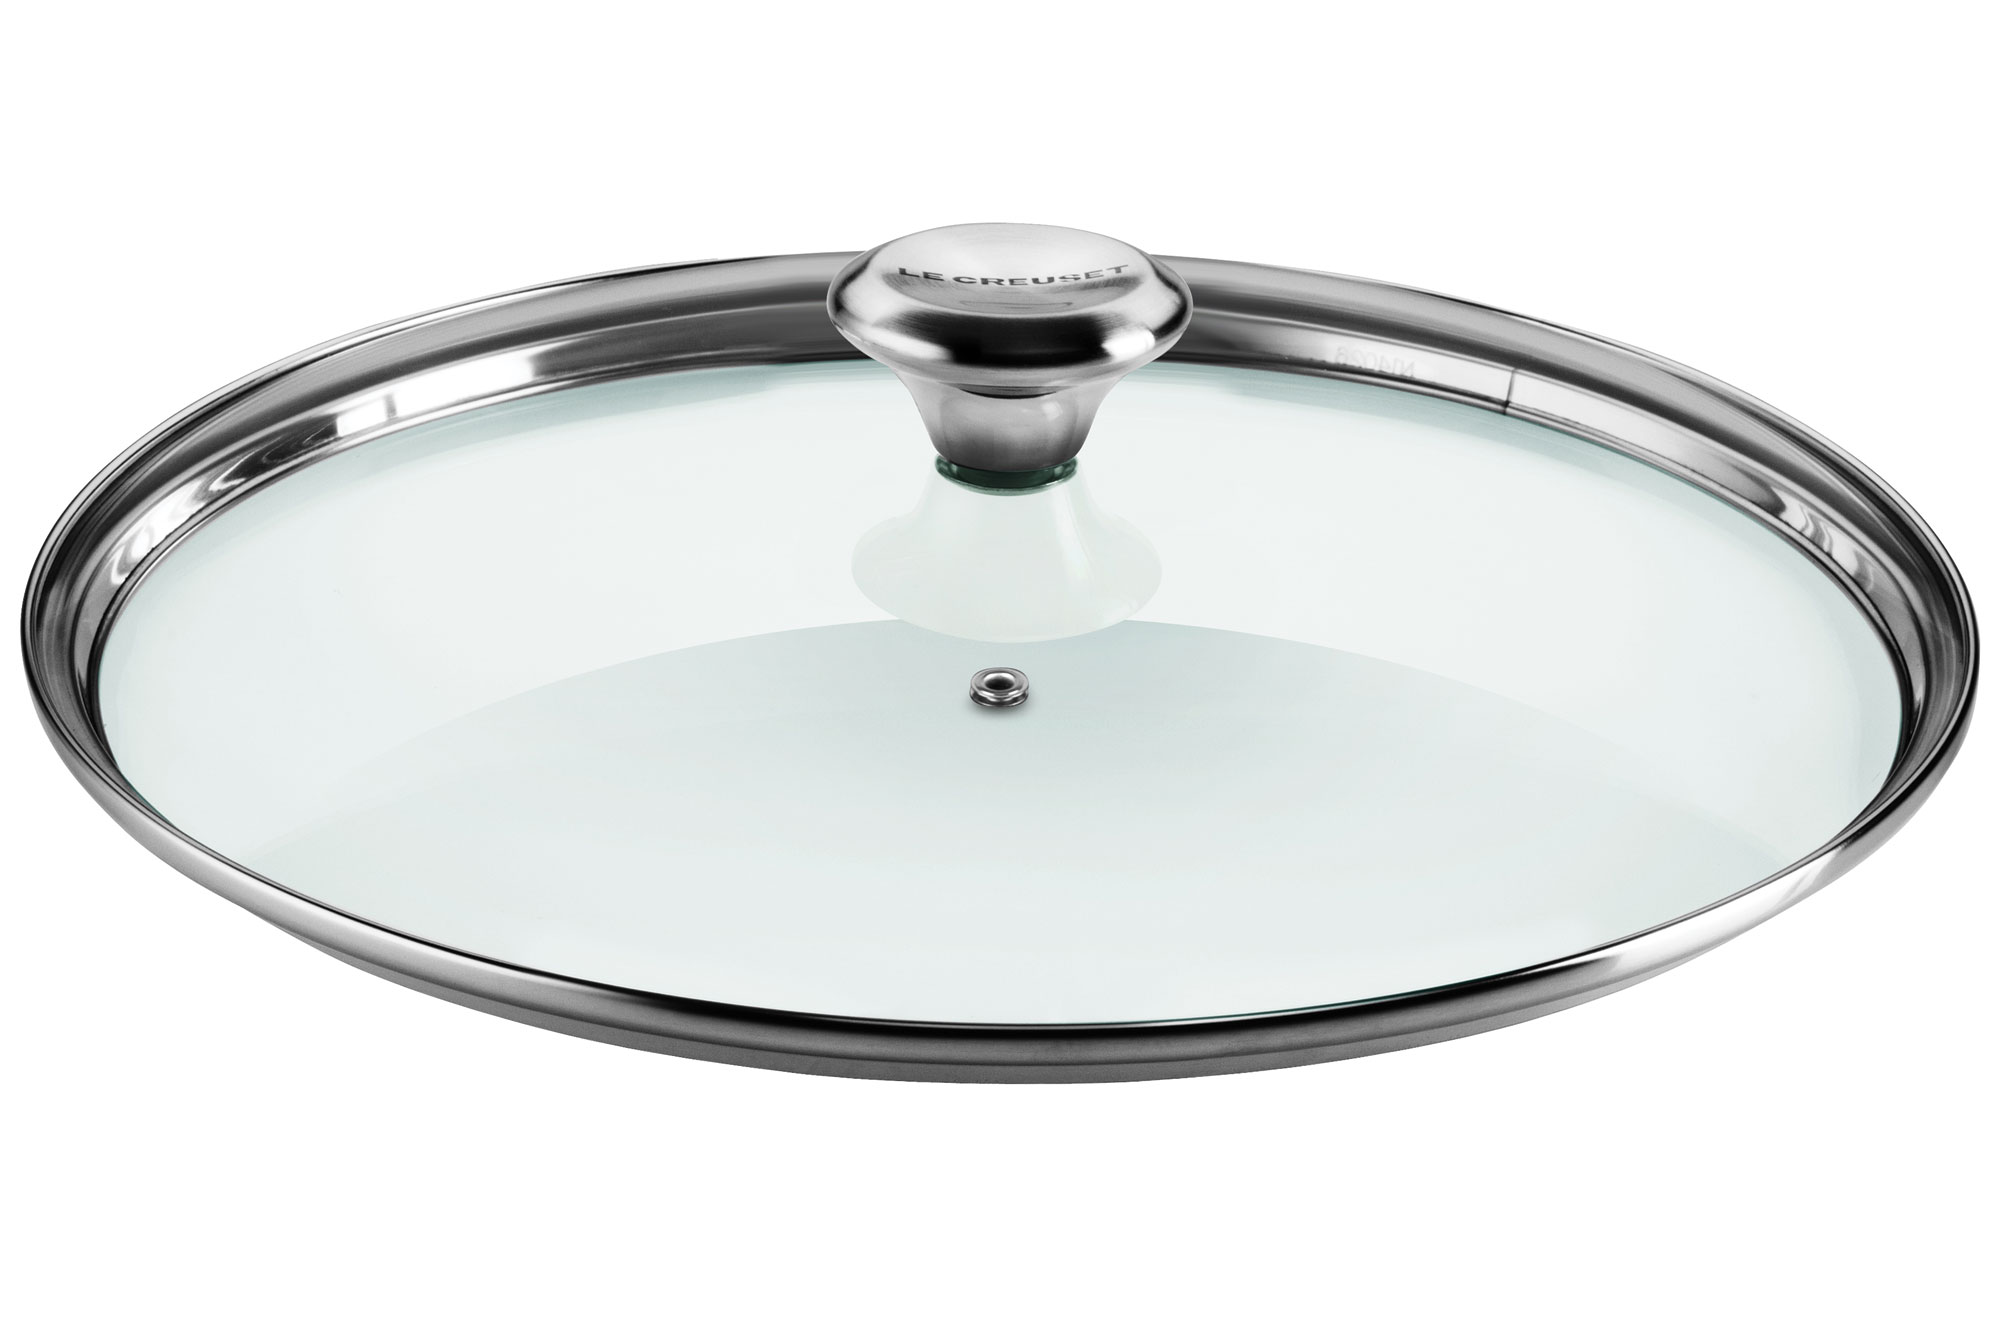 Le Creuset Paella Pan Glass Lid With Stainless Steel Knob